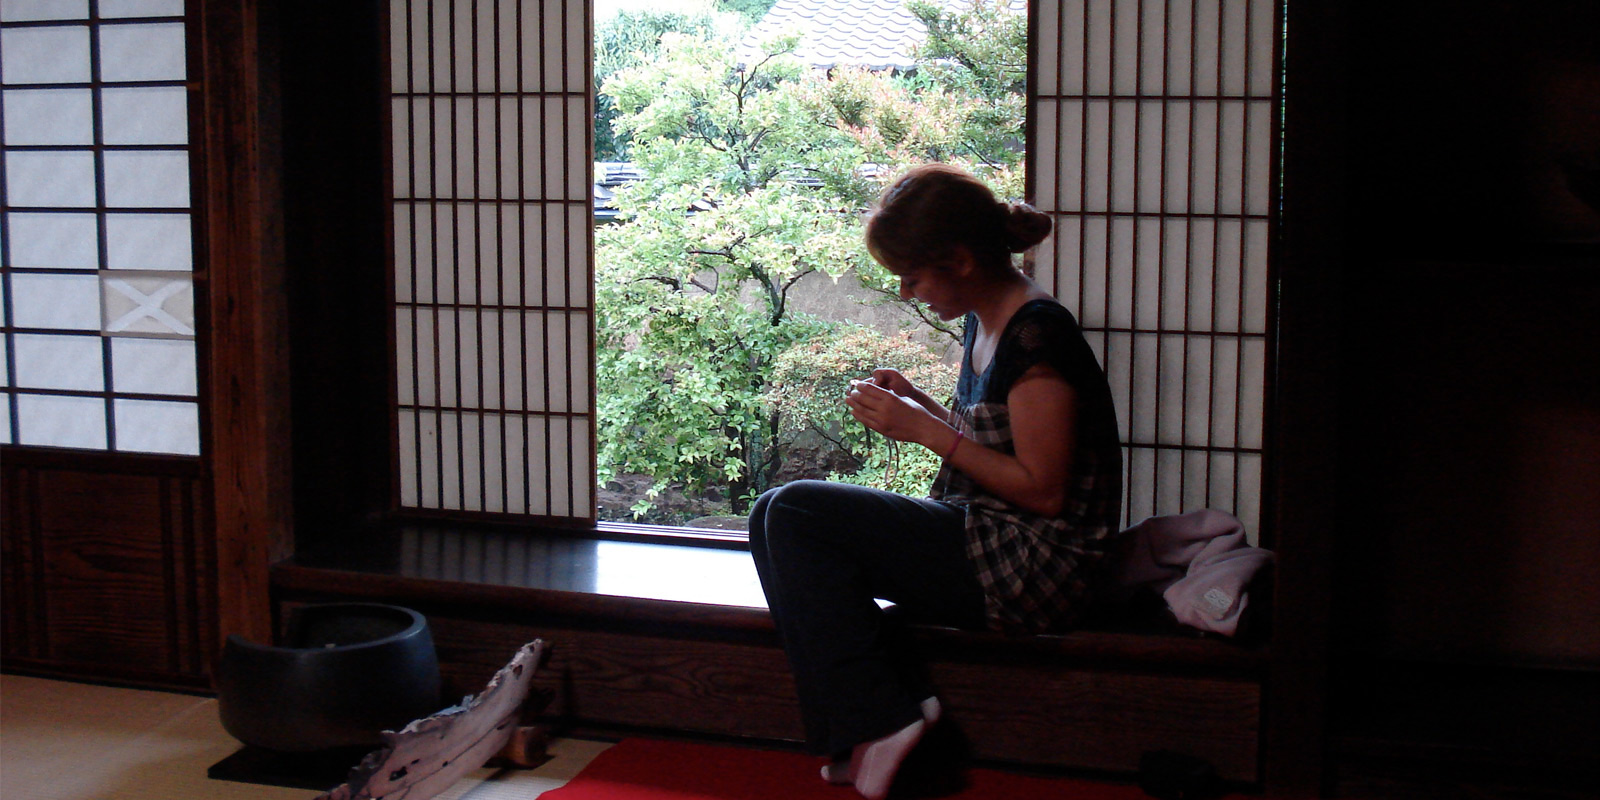 Japan, Culture in Context: links to education abroad page